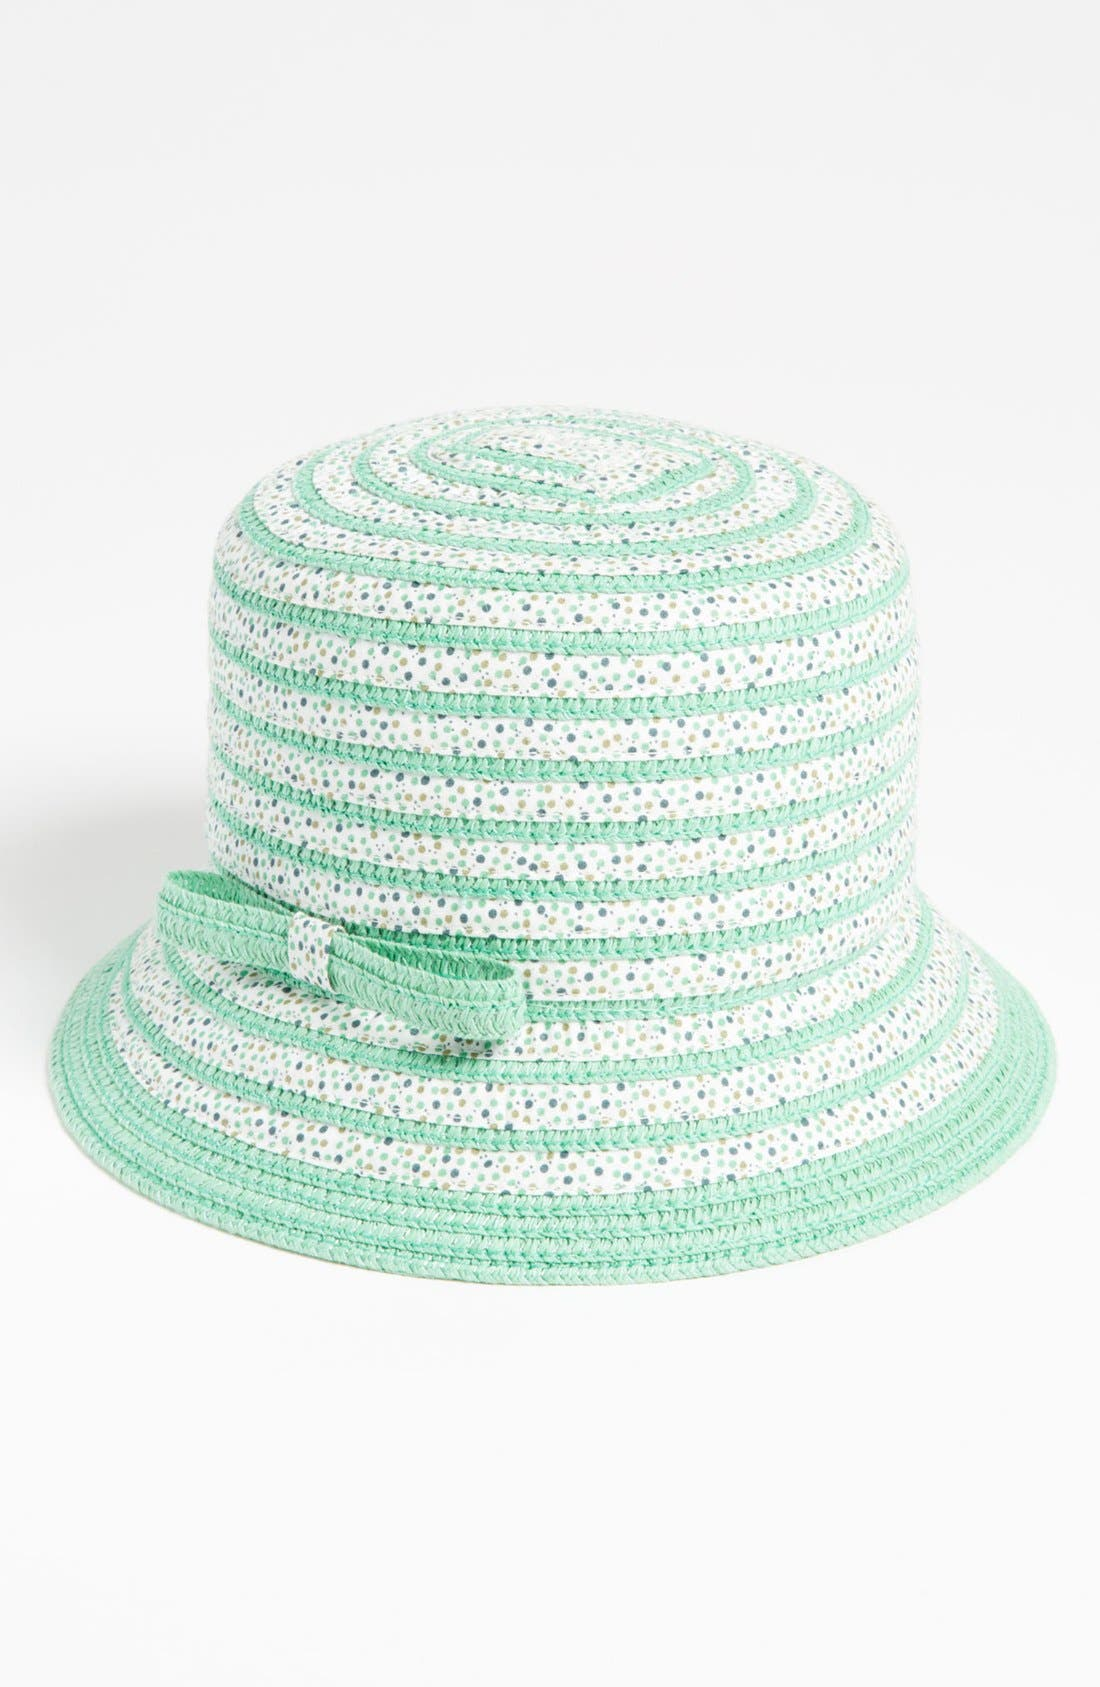 Main Image - Nordstrom 'Bow' Bucket Hat